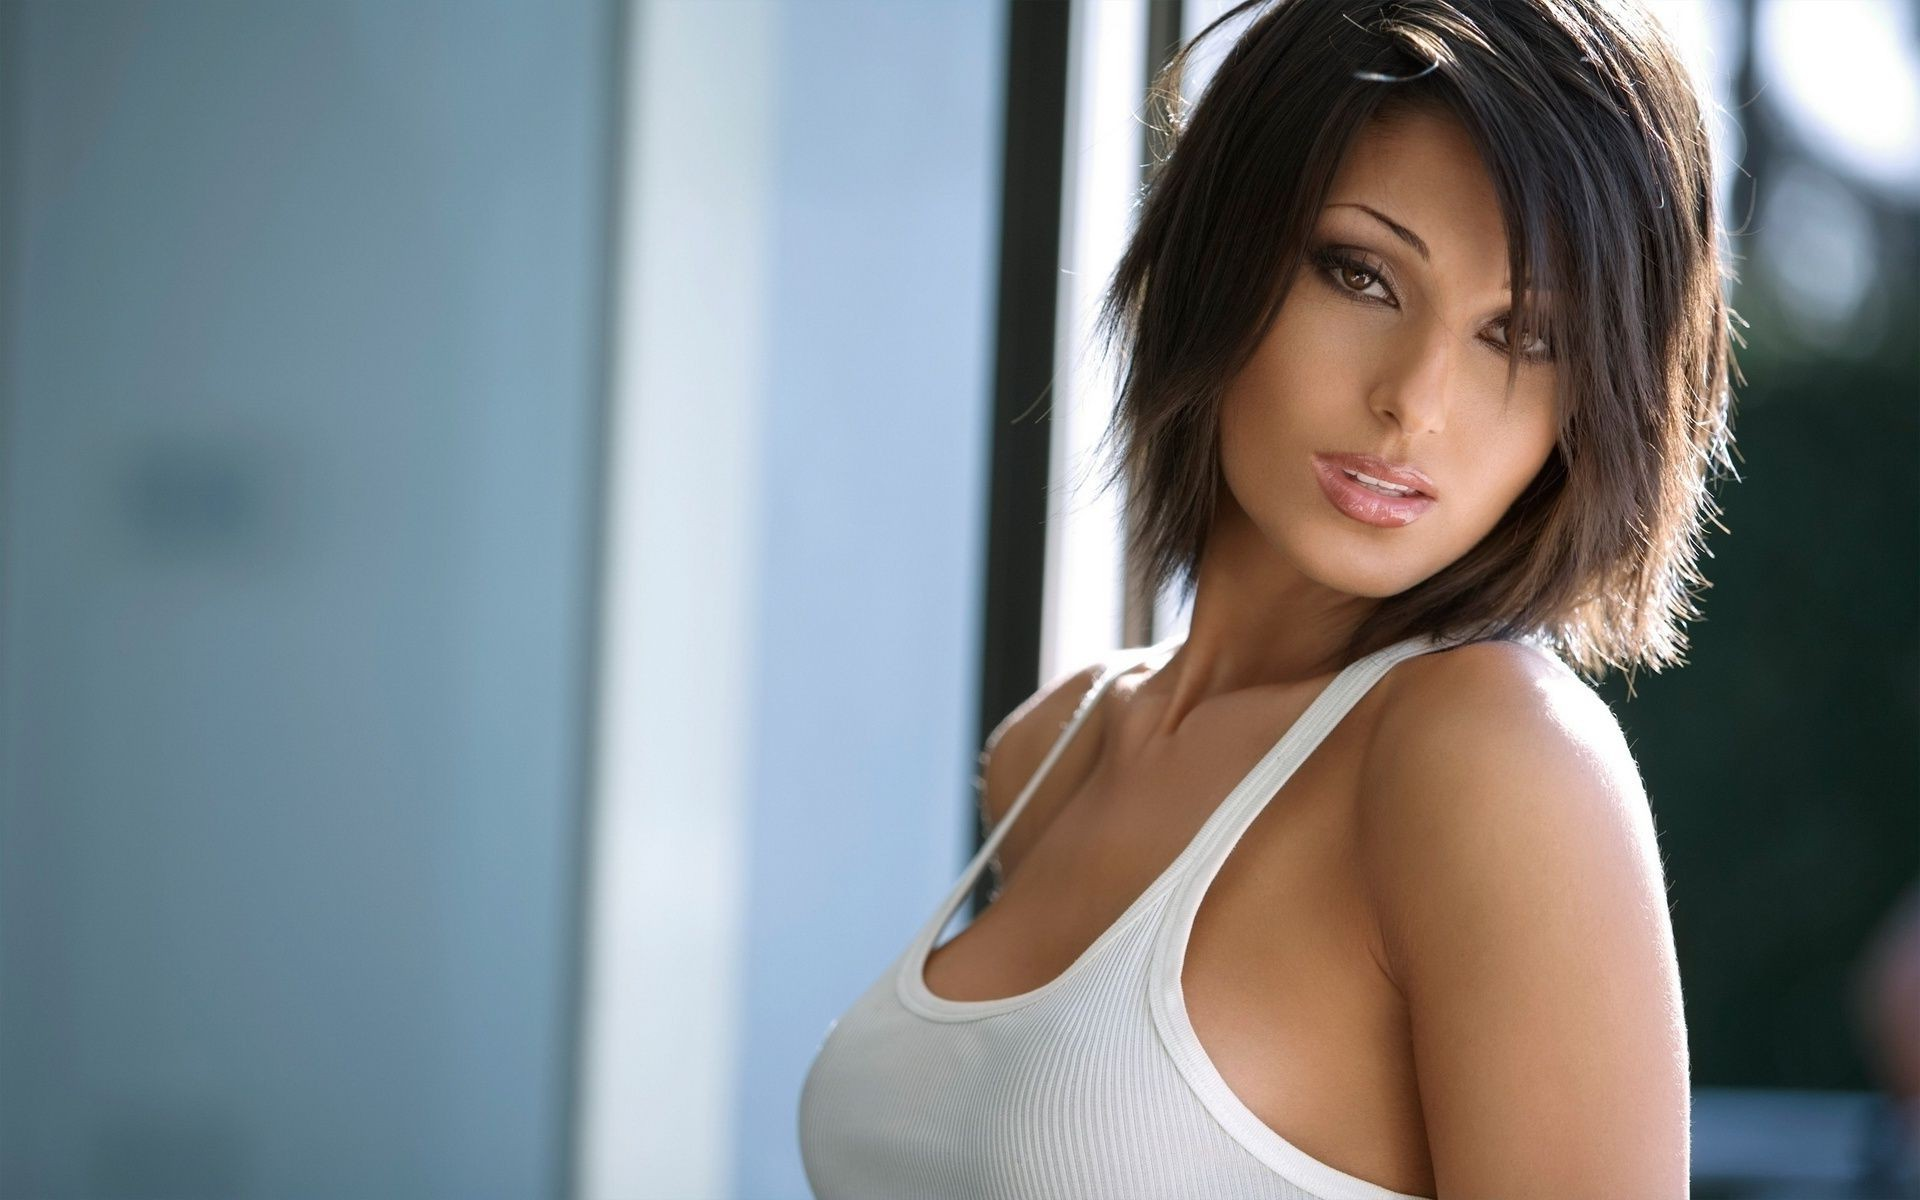 Cute girl with large Breasts in a white t-shirt